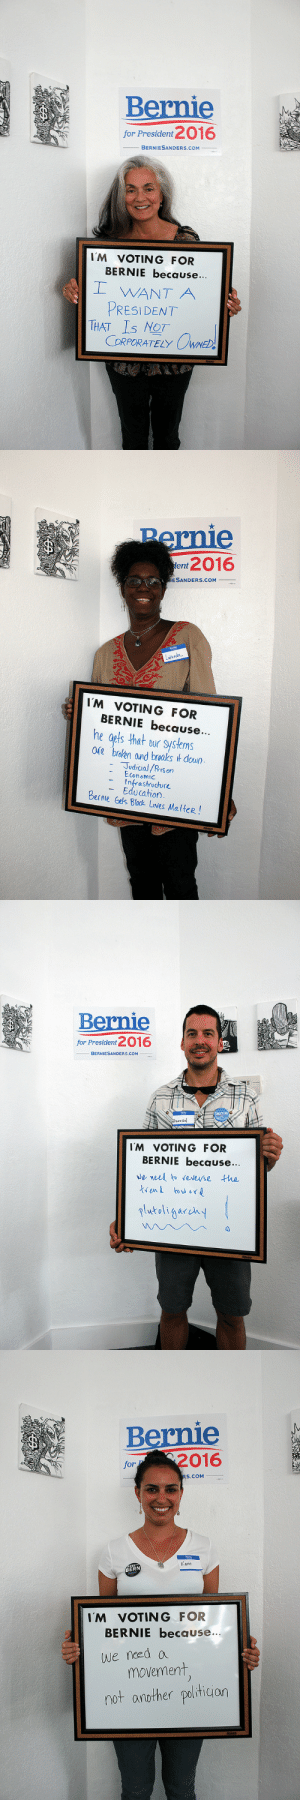 highmelalanin:  whywerevotingbernie:  Why are you voting for Bernie?  Beautiful : Bernie  for President 2016  BERNIESANDERS.COM  I'M VOTING FOR  BERNIE because...  I WANT A  PRESIDENT  THAT Is NOT  CORPORATELY OWNED!   Pernie  tent 2016  IESANDERS.COM  Lakenda  I'M VOTING FOR  BERNIE because...  he gets that our systems  are broken and breaks it down.  Judicial/Prison  Economic  Infrastructure  Education.  Bernie Gels Black LIves Malter!   Bernie  for President 2016  BERNIESANDERS.COM  DapeEN  I'M VOTING FOR  BERNIE becguse...  we need to reverse the  trend tow ard  platoligarehy   Bernie  for 2016  RS.COM  Hetio  KARA  BERN  I'M VOTING FOR  BERNIE because...  we need a  movement,  not another politician highmelalanin:  whywerevotingbernie:  Why are you voting for Bernie?  Beautiful